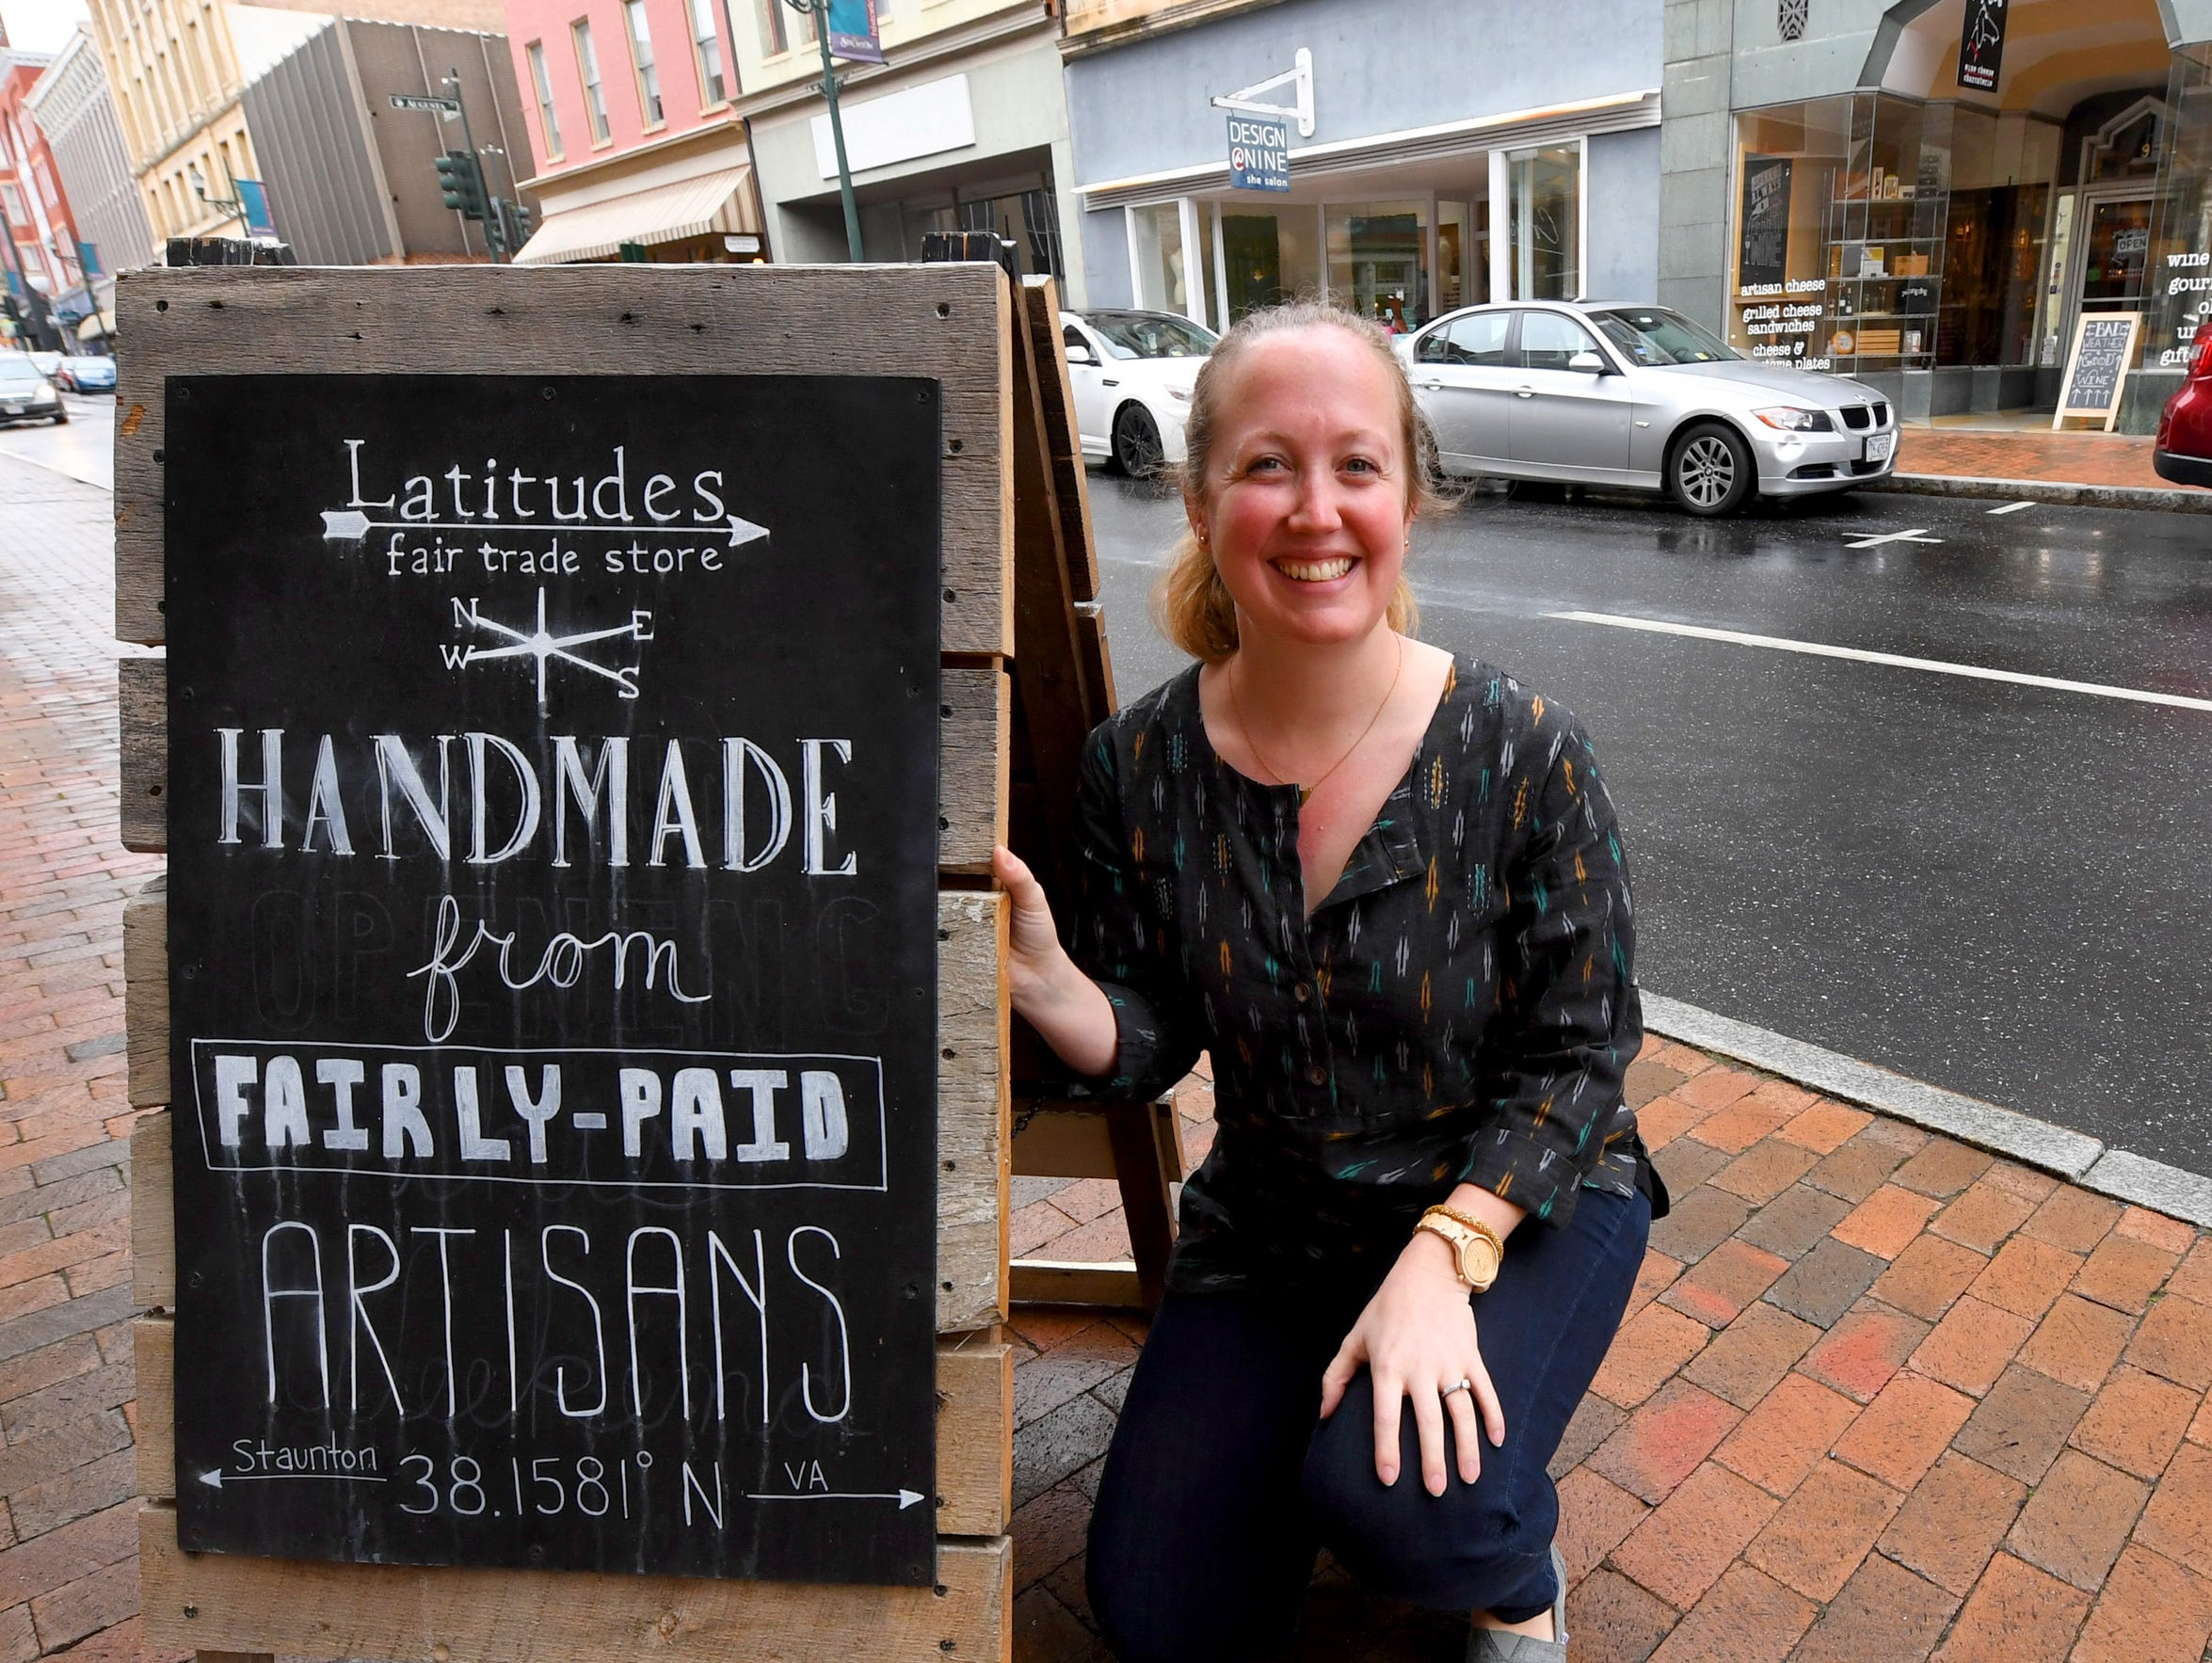 Anna Schoenduby is owner of Latitudes Fair Trade in